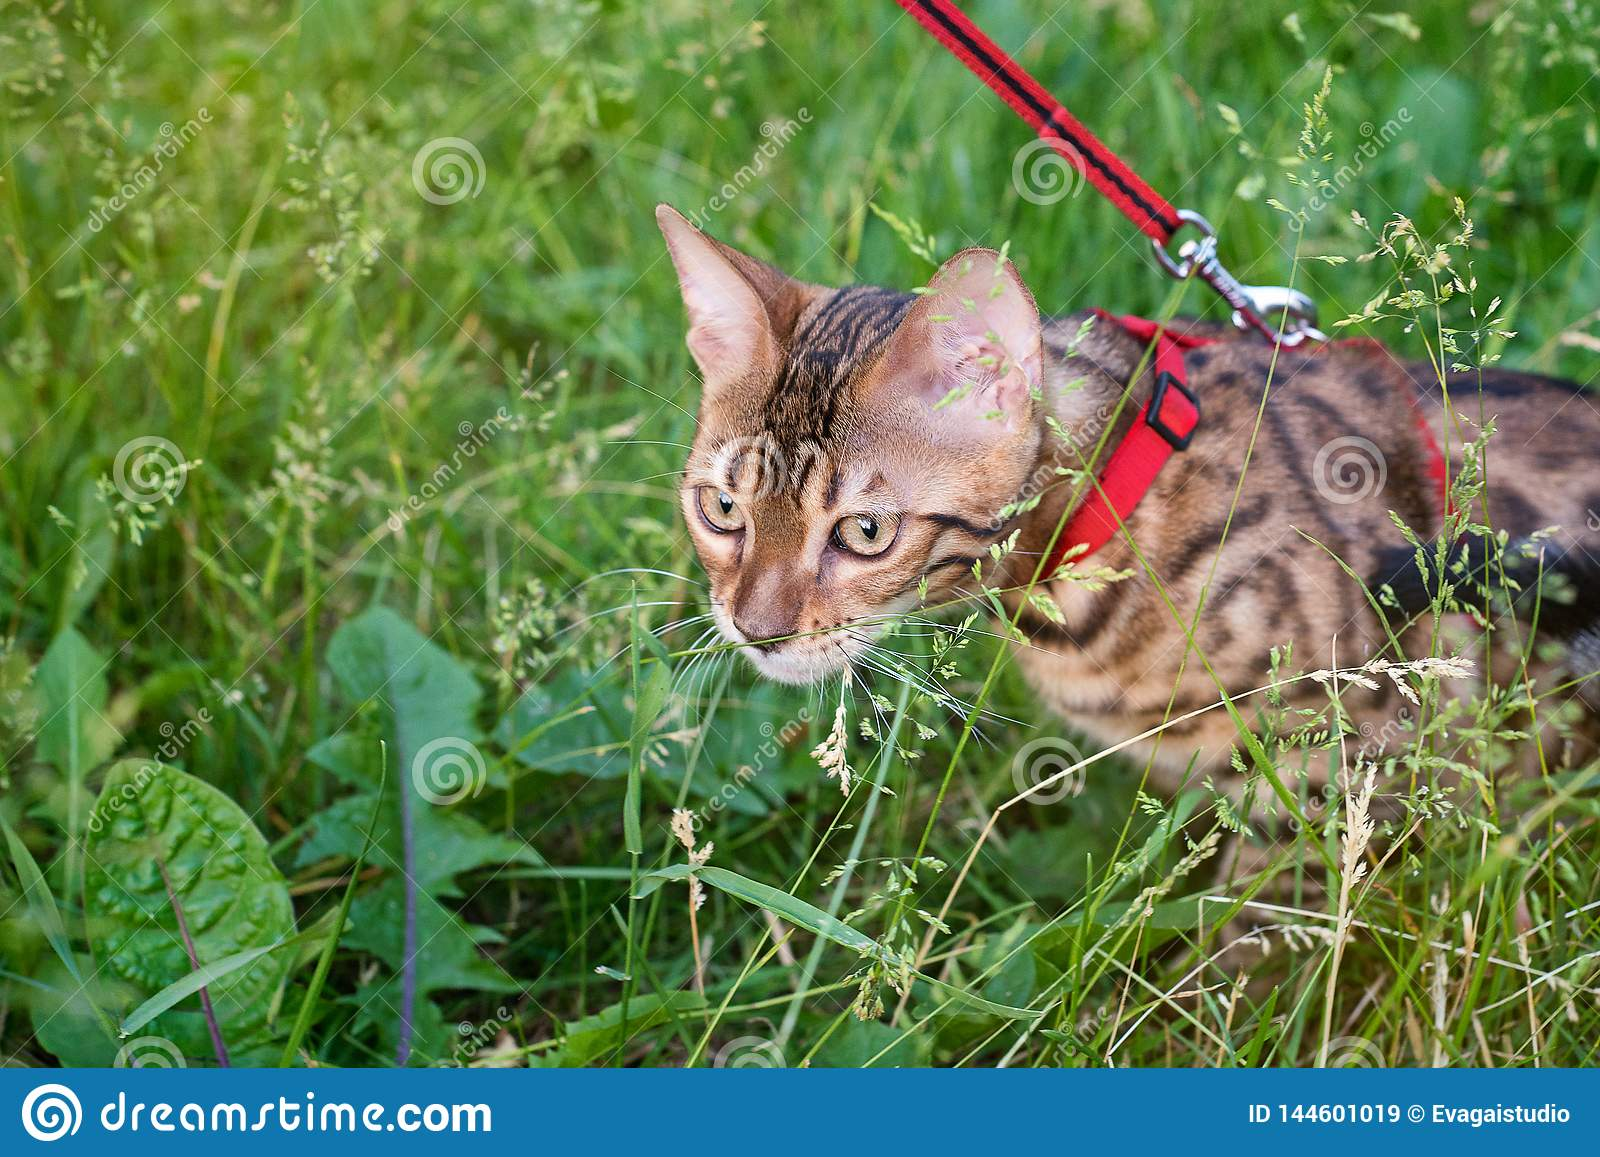 One cat bengal walks on the green grass. Bengal kitty learns to walk along the forest. Asian leopard cat tries to hide